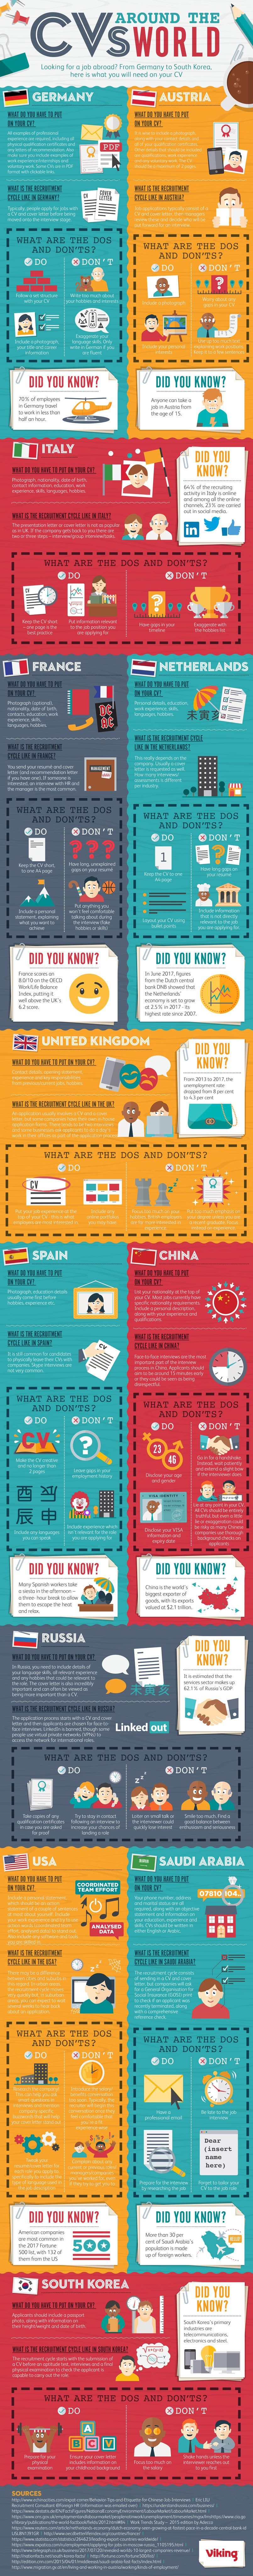 CVs Around The World: What To Know When Applying For Jobs Around The World Infographic